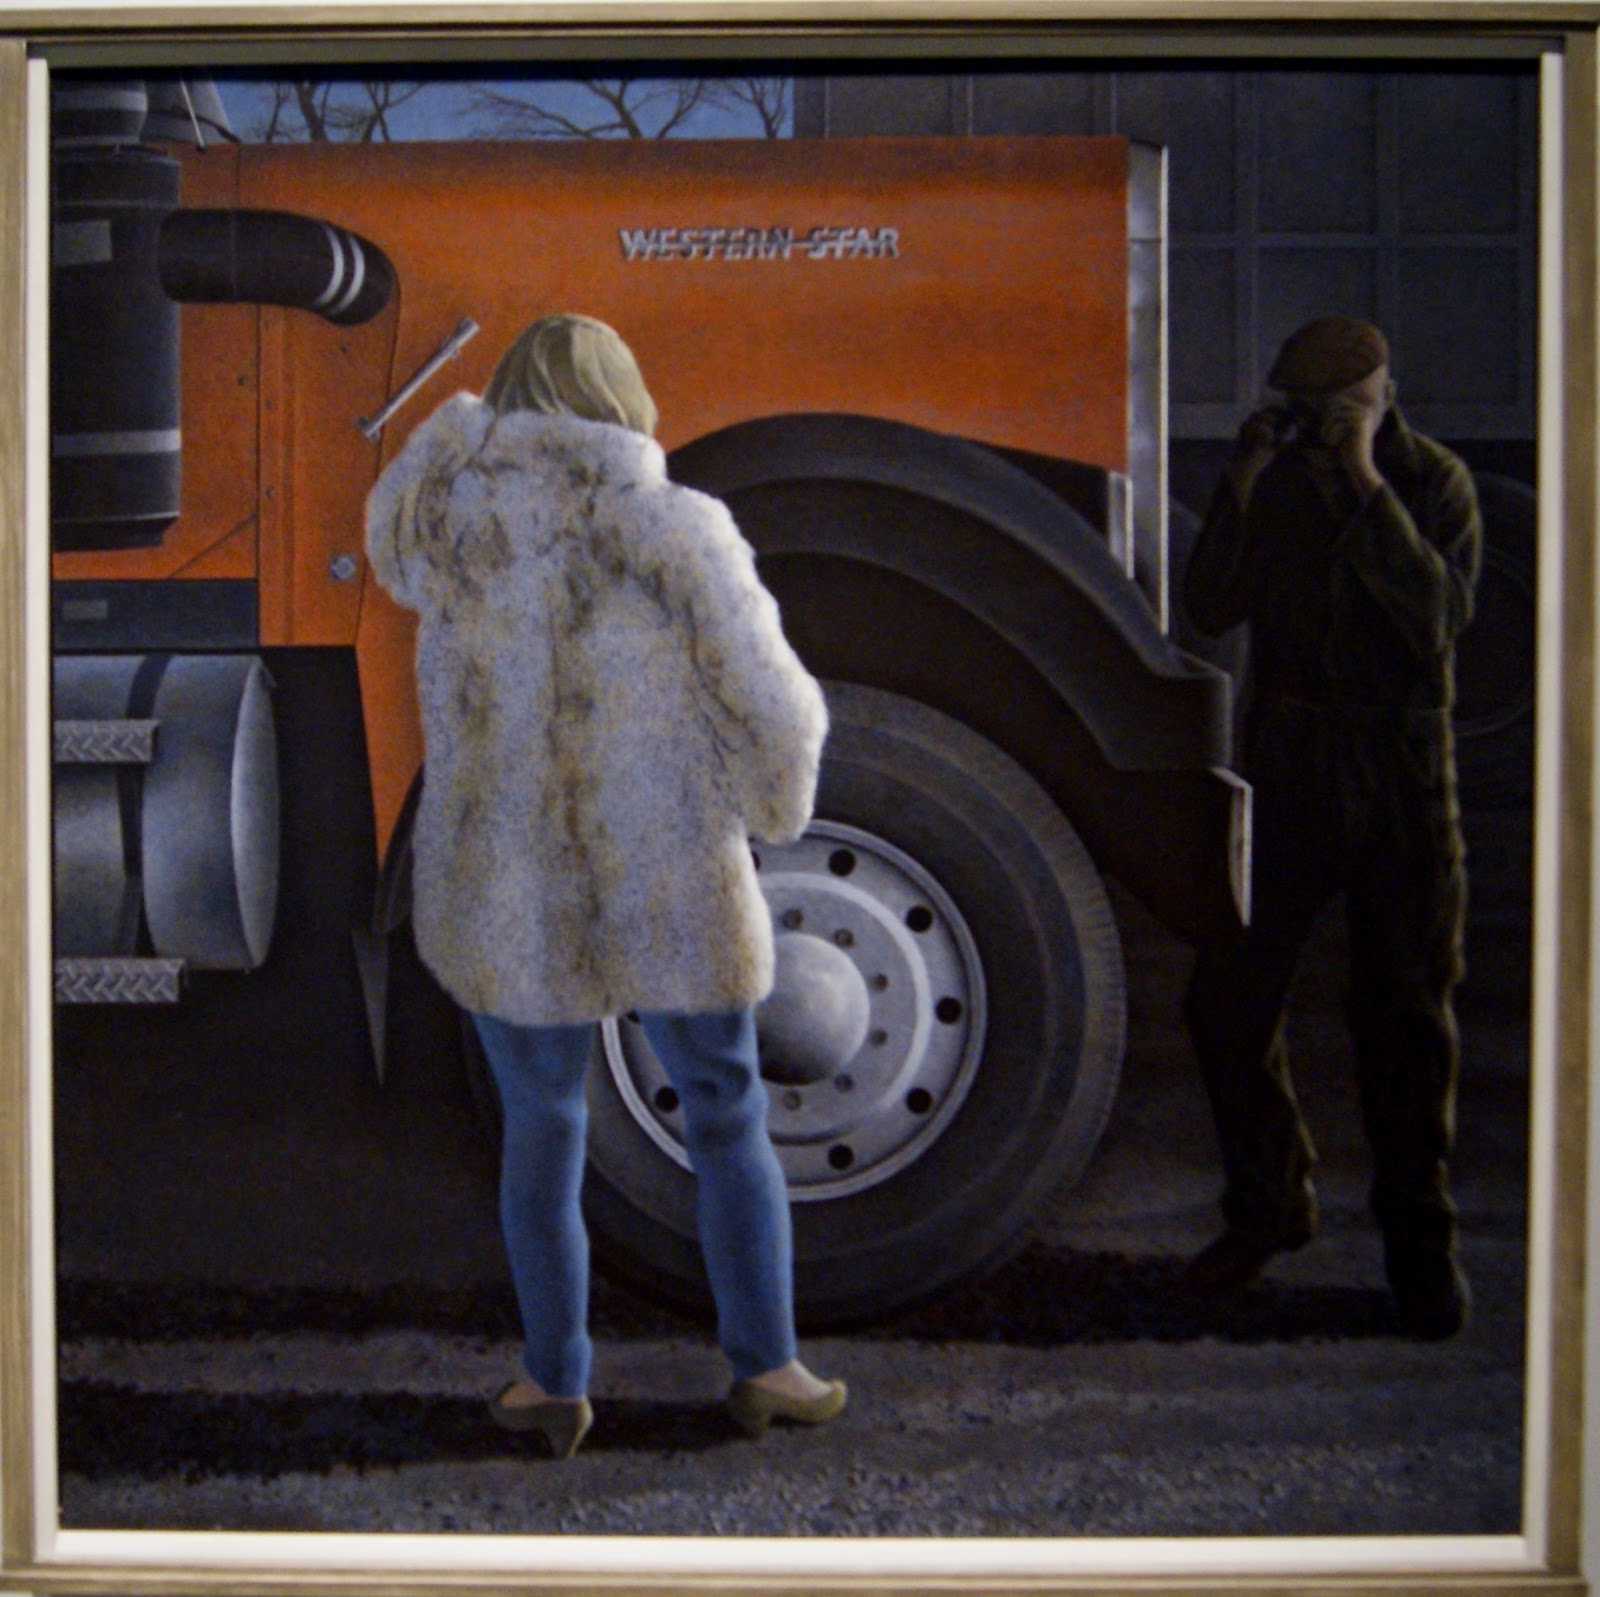 Alex Colville Exhibit at Art Gallery of Ontario in Toronto, Western Star, 1985, paintings, art, artmatters, culture,ontario, Canadian Artist, Painter, Canada